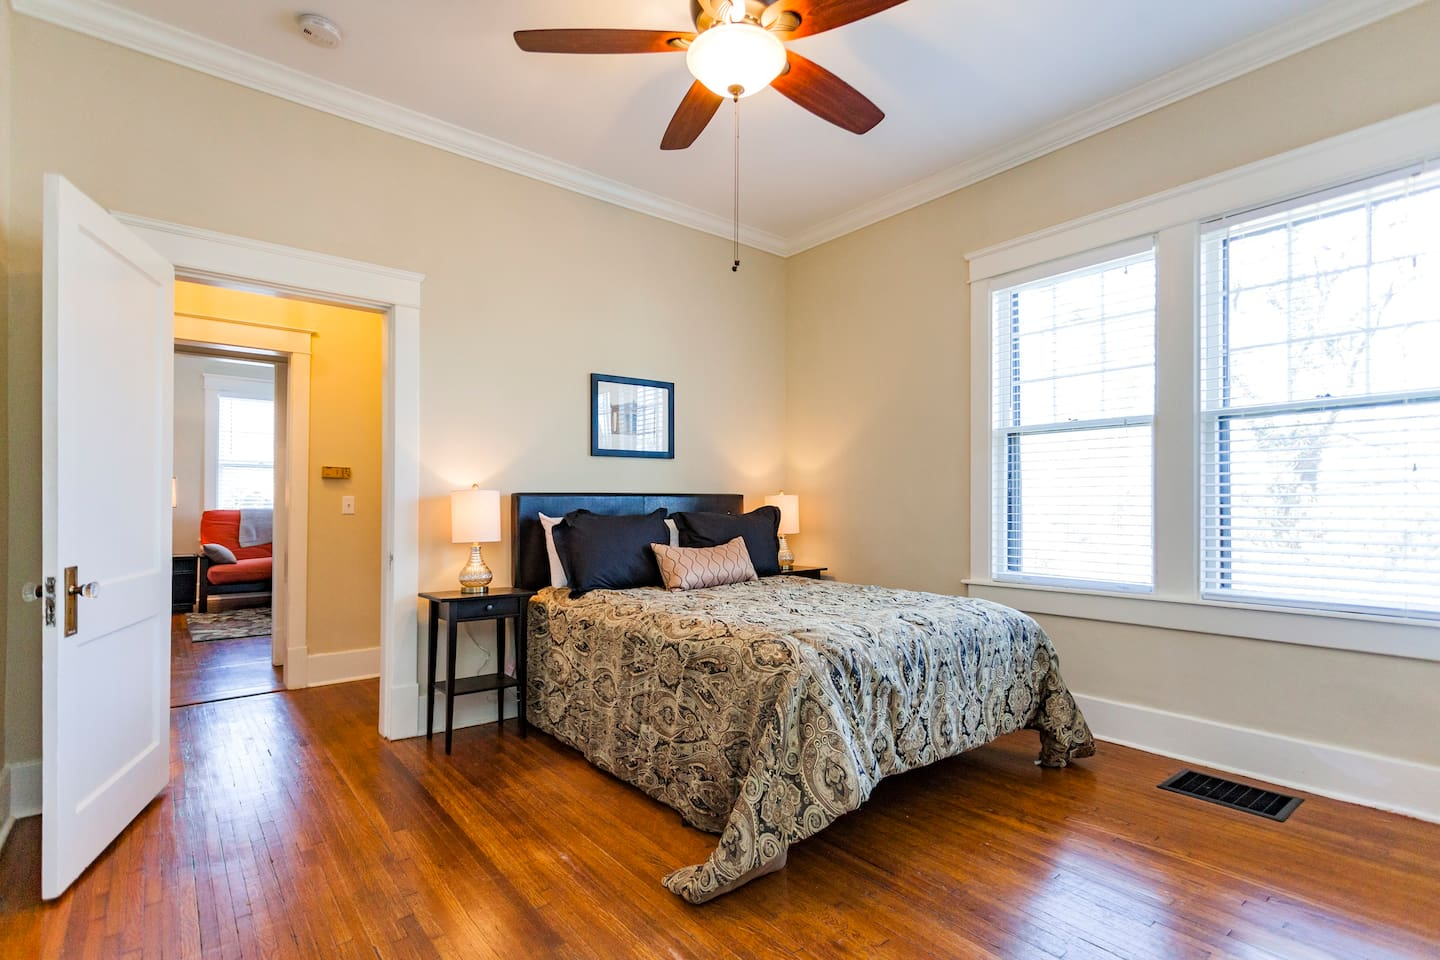 Very nice and roomy bedroom with a large closet